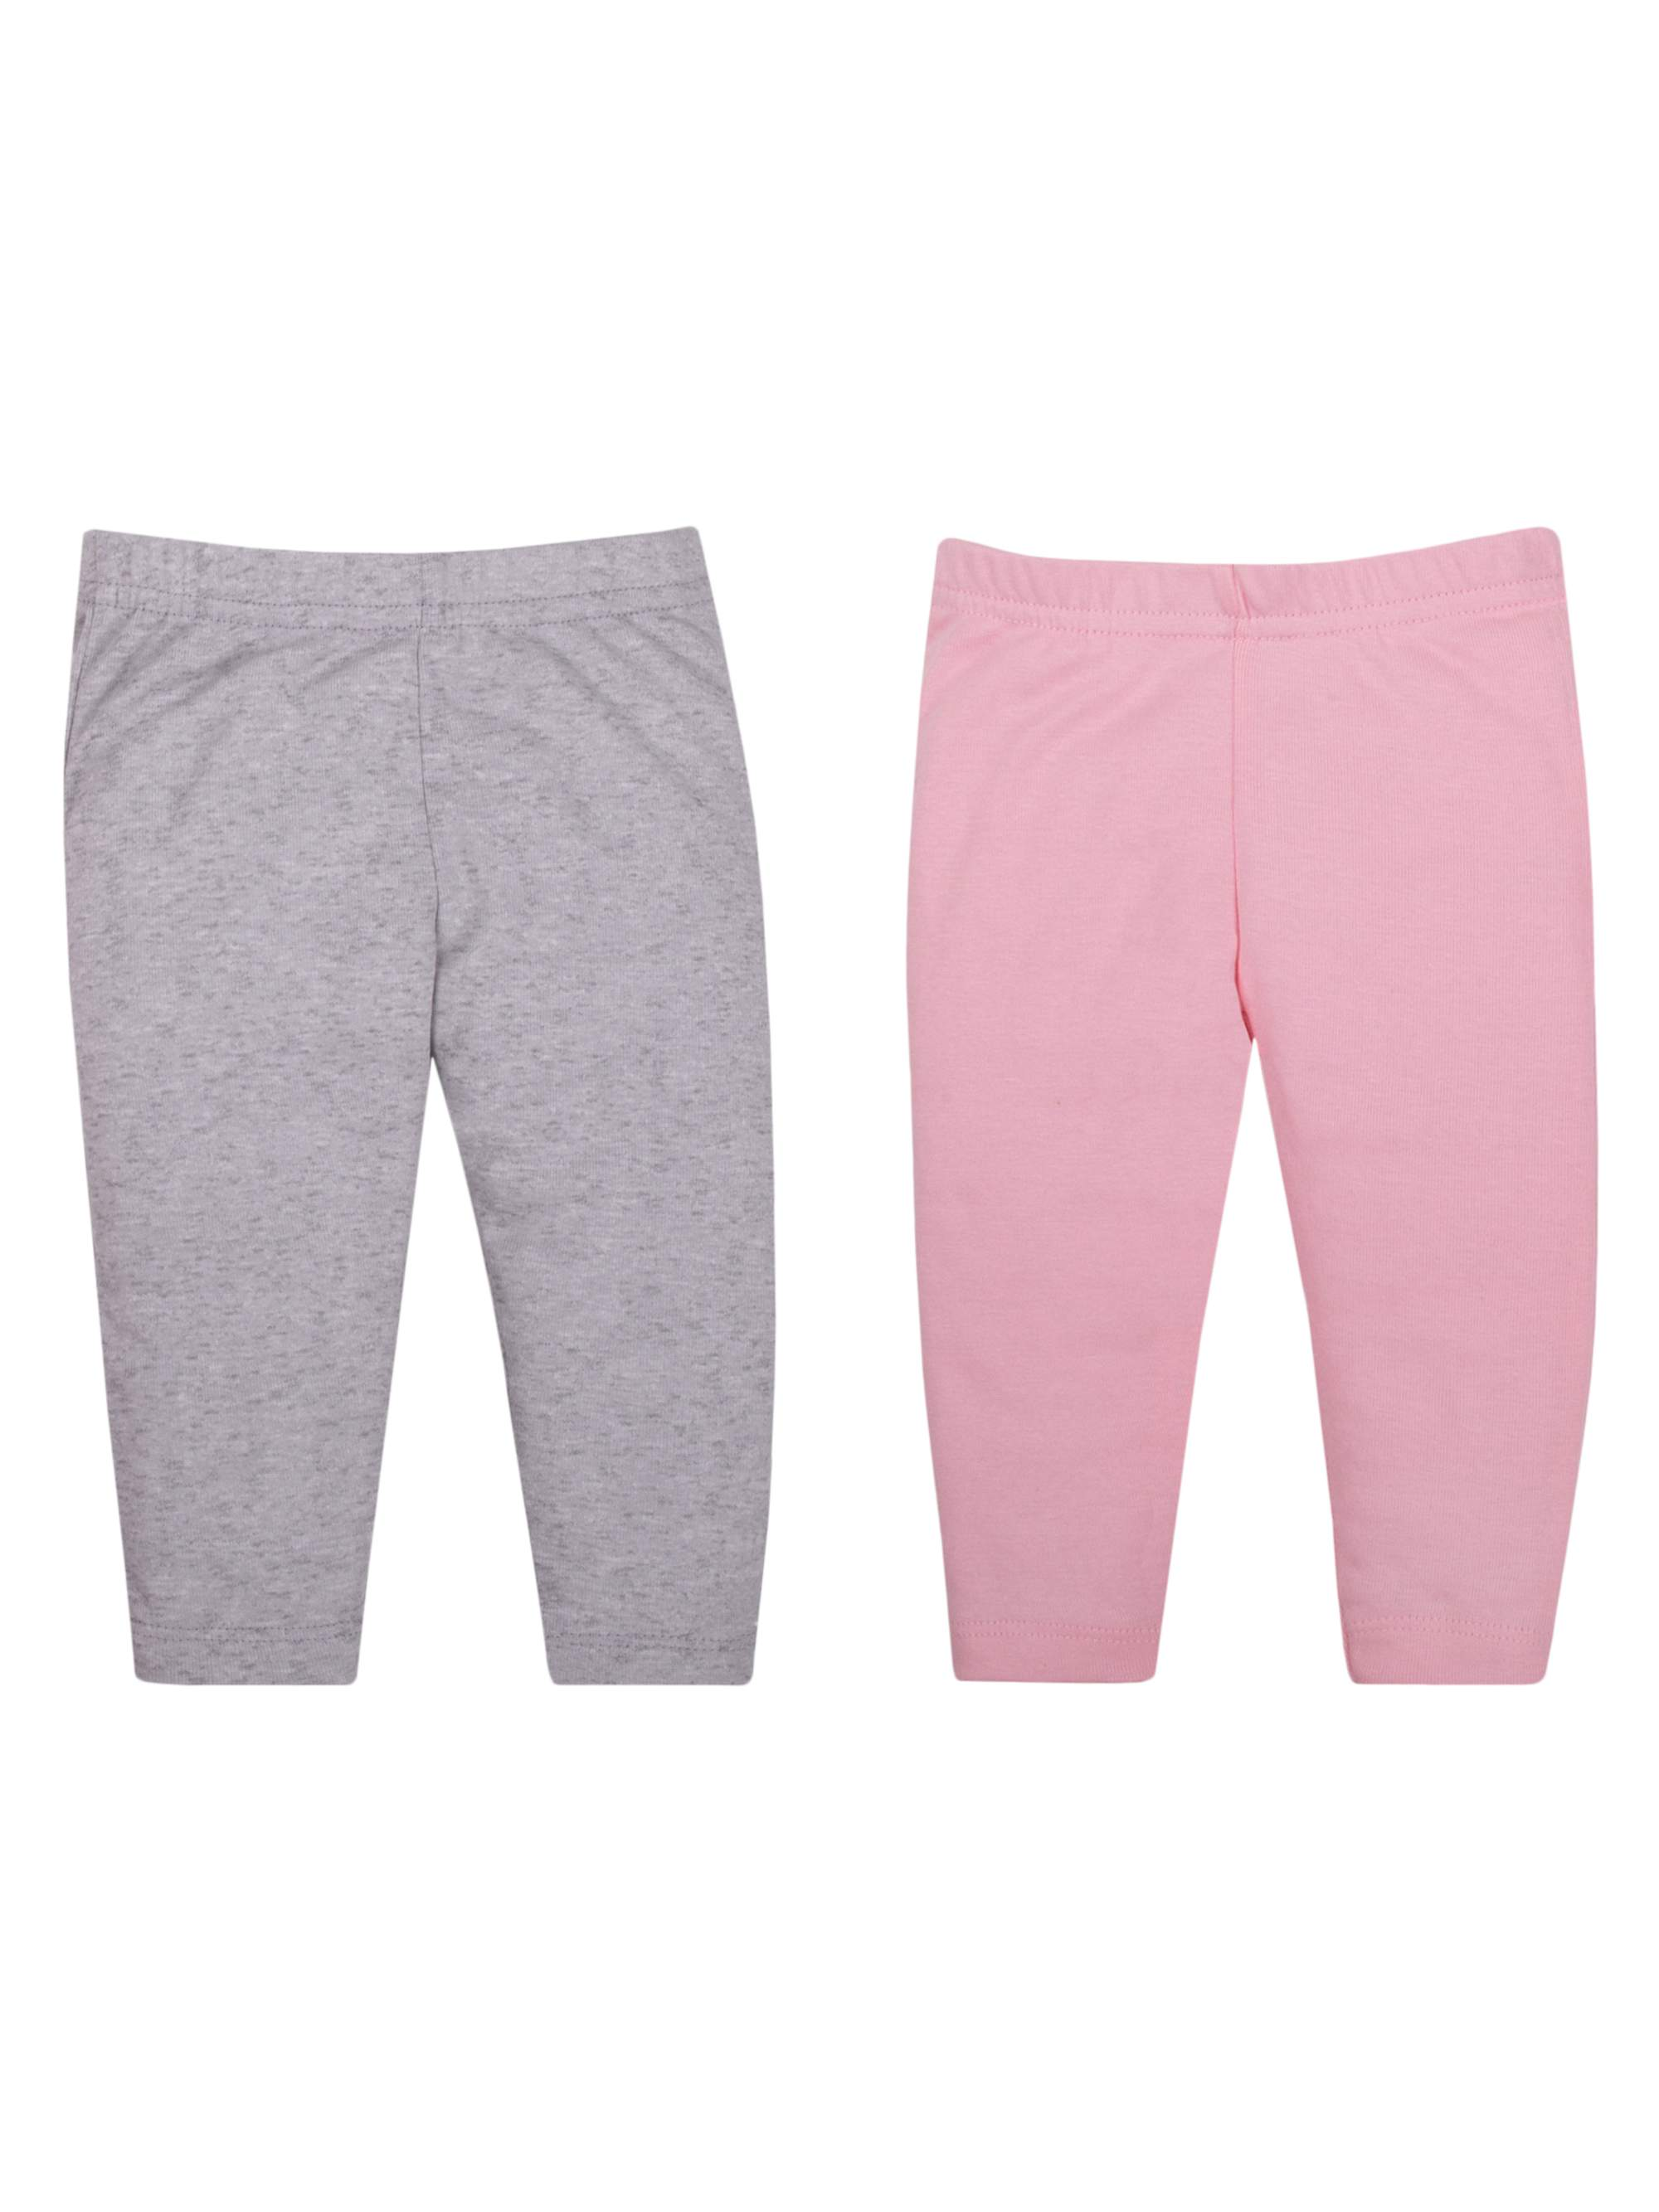 Knit Leggings, 2-pack (Baby Girls)